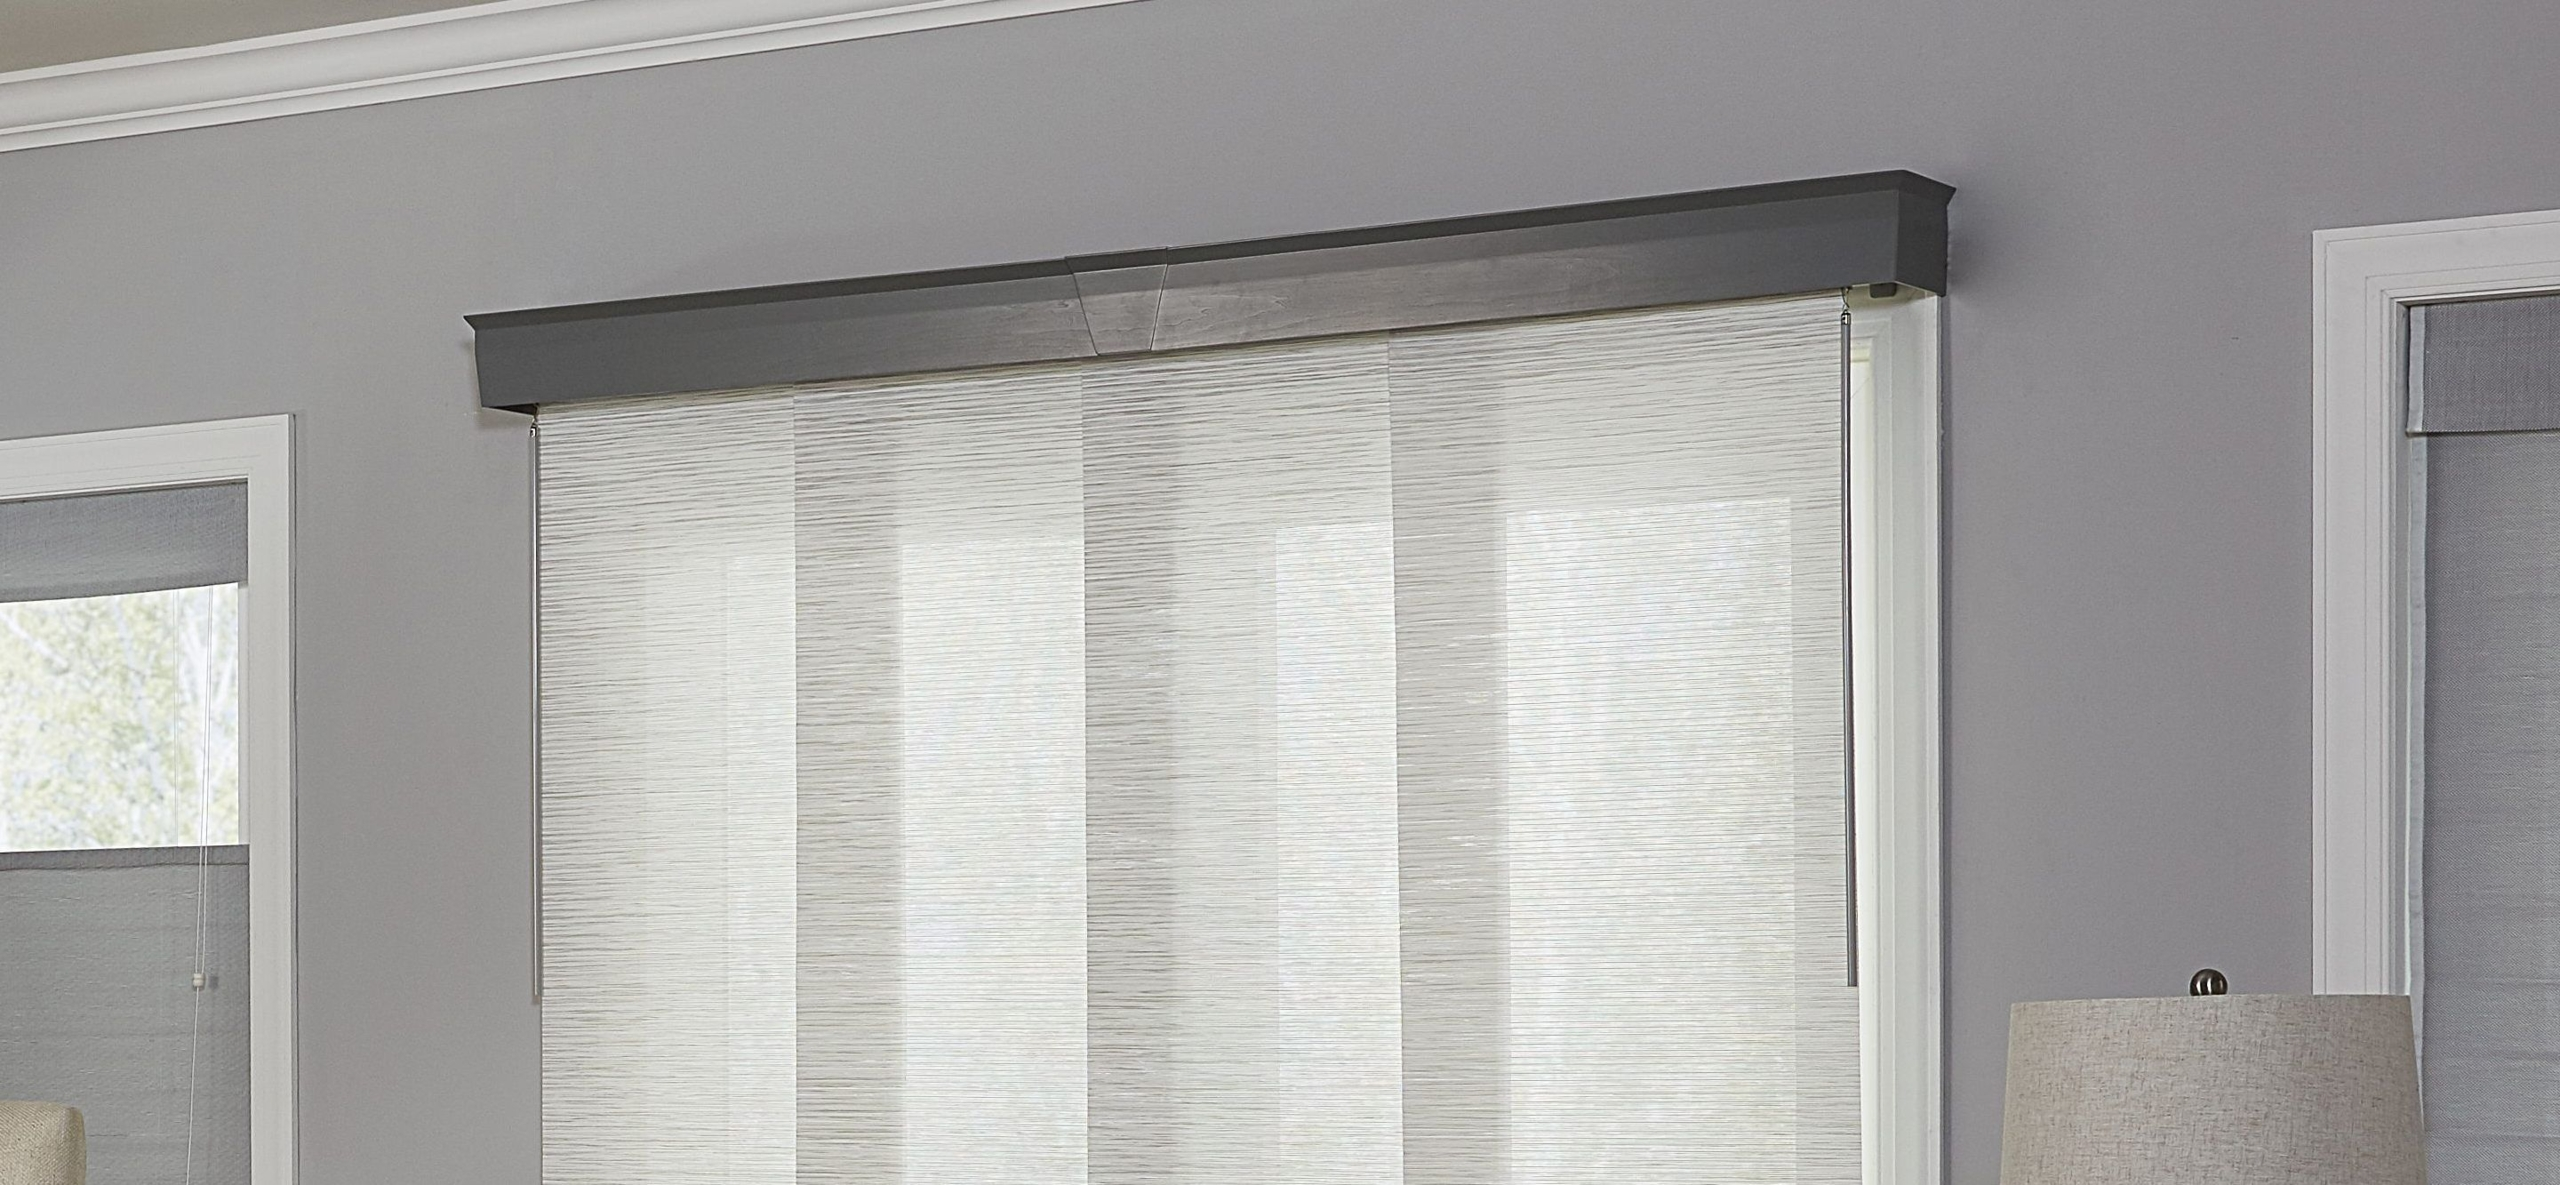 Sliding Glass Door Blinds You Ll Love In 2020 Visualhunt